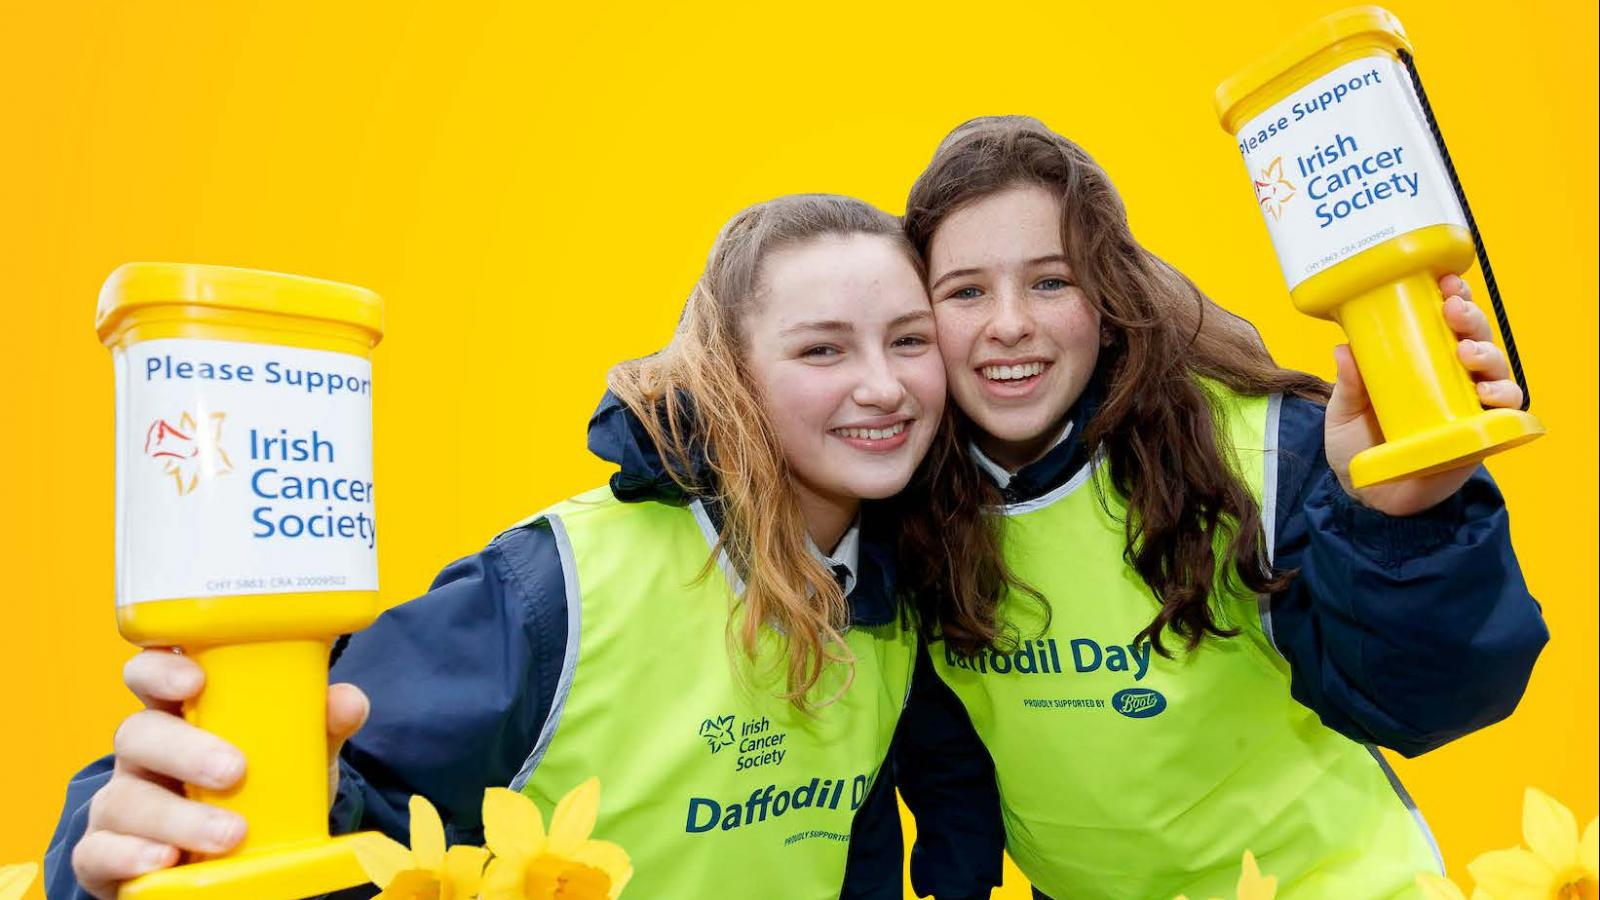 Daffodil Day 2020 Fundraising Cover